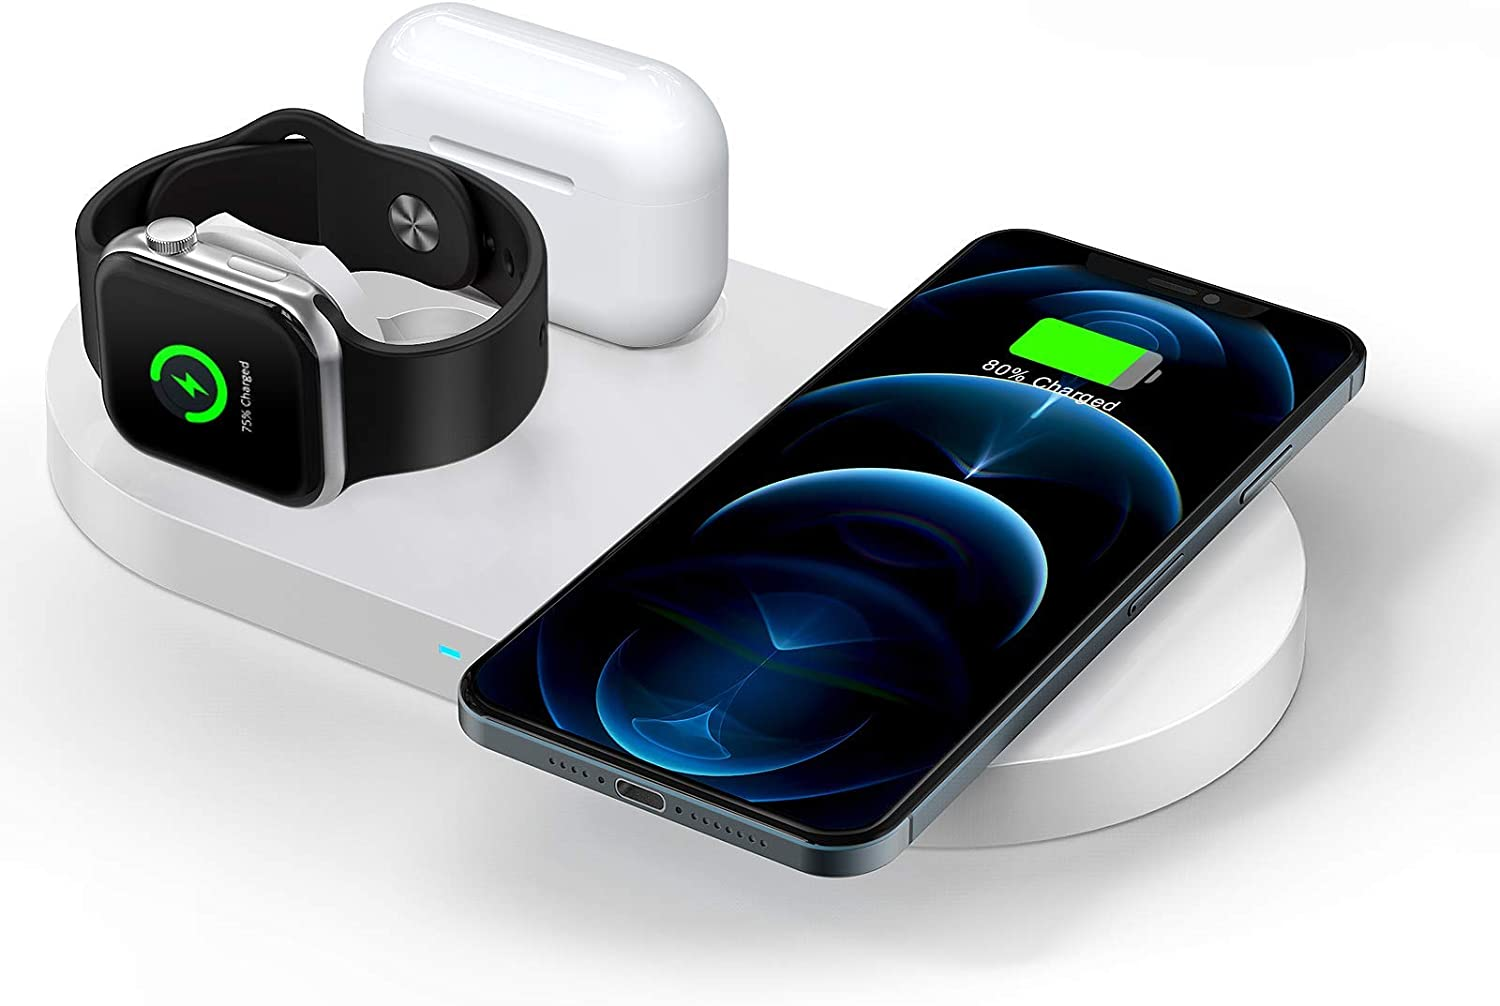 QI-EU Wireless Charger, 23W Fast Wireless Charging Station,3 in 1 Qi-Certified Charging Pad Stand for iWatch SE/6/5/4/3/2 Airpods 1/2/Pro iPhone 12/12 Pro/12 Pro Max/12 mini/11/11 Pro/SE/8/X/XR